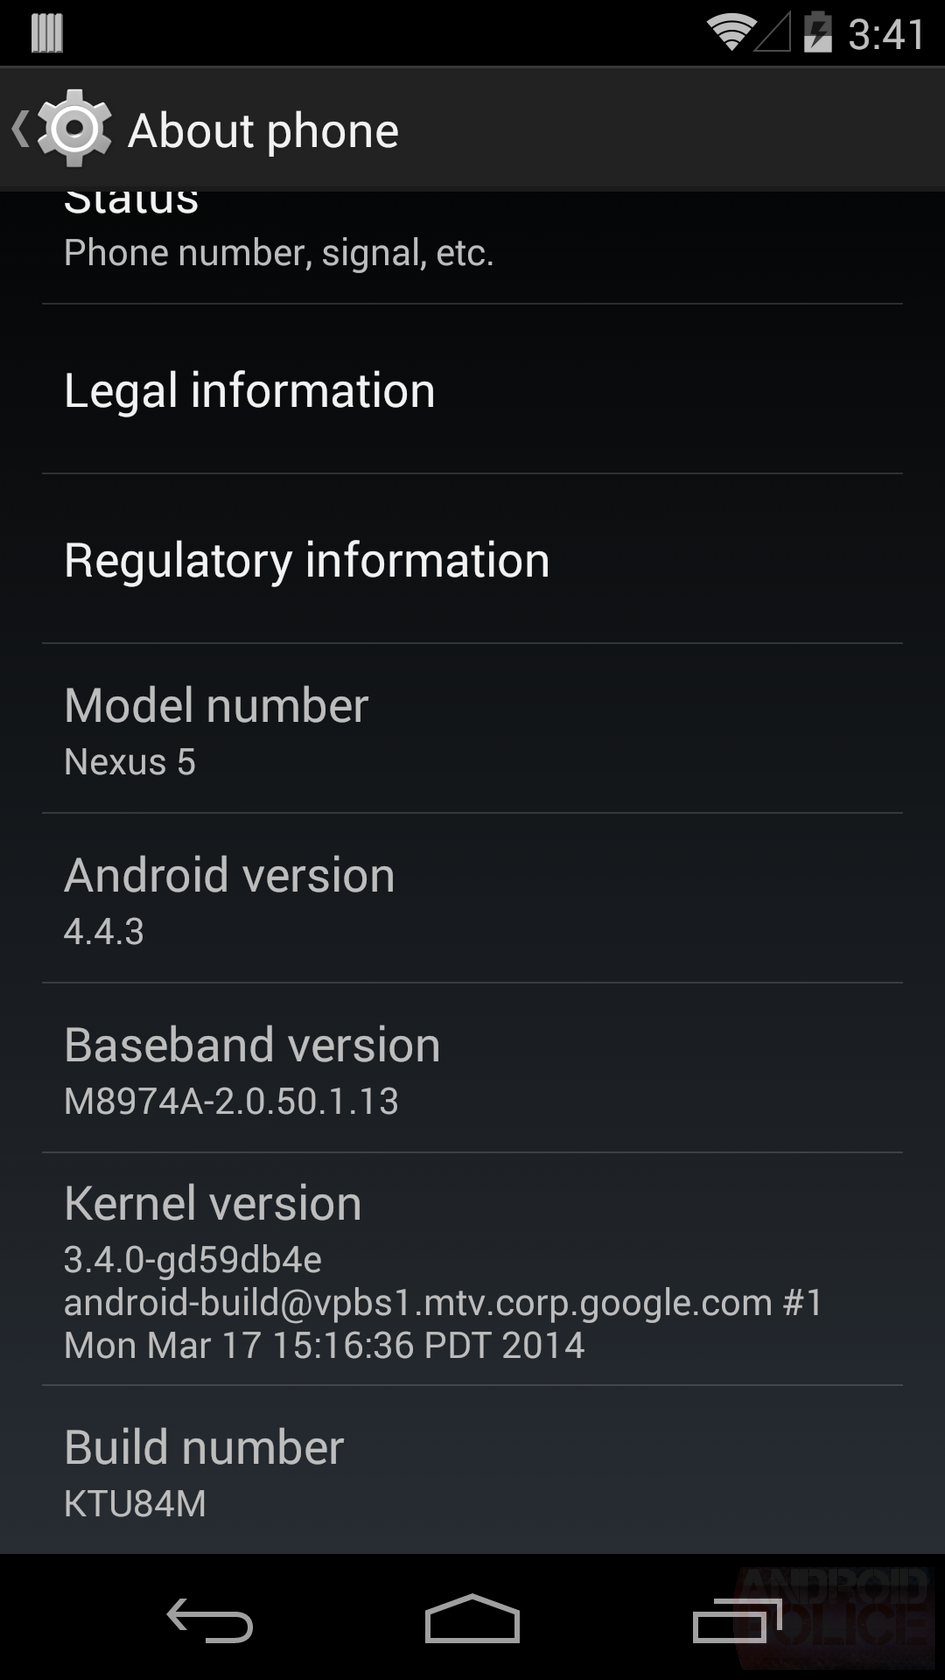 Here's The Nexus 5 Android 4.4.3 (KTU84M) OTA Zip Url You've Been Waiting For